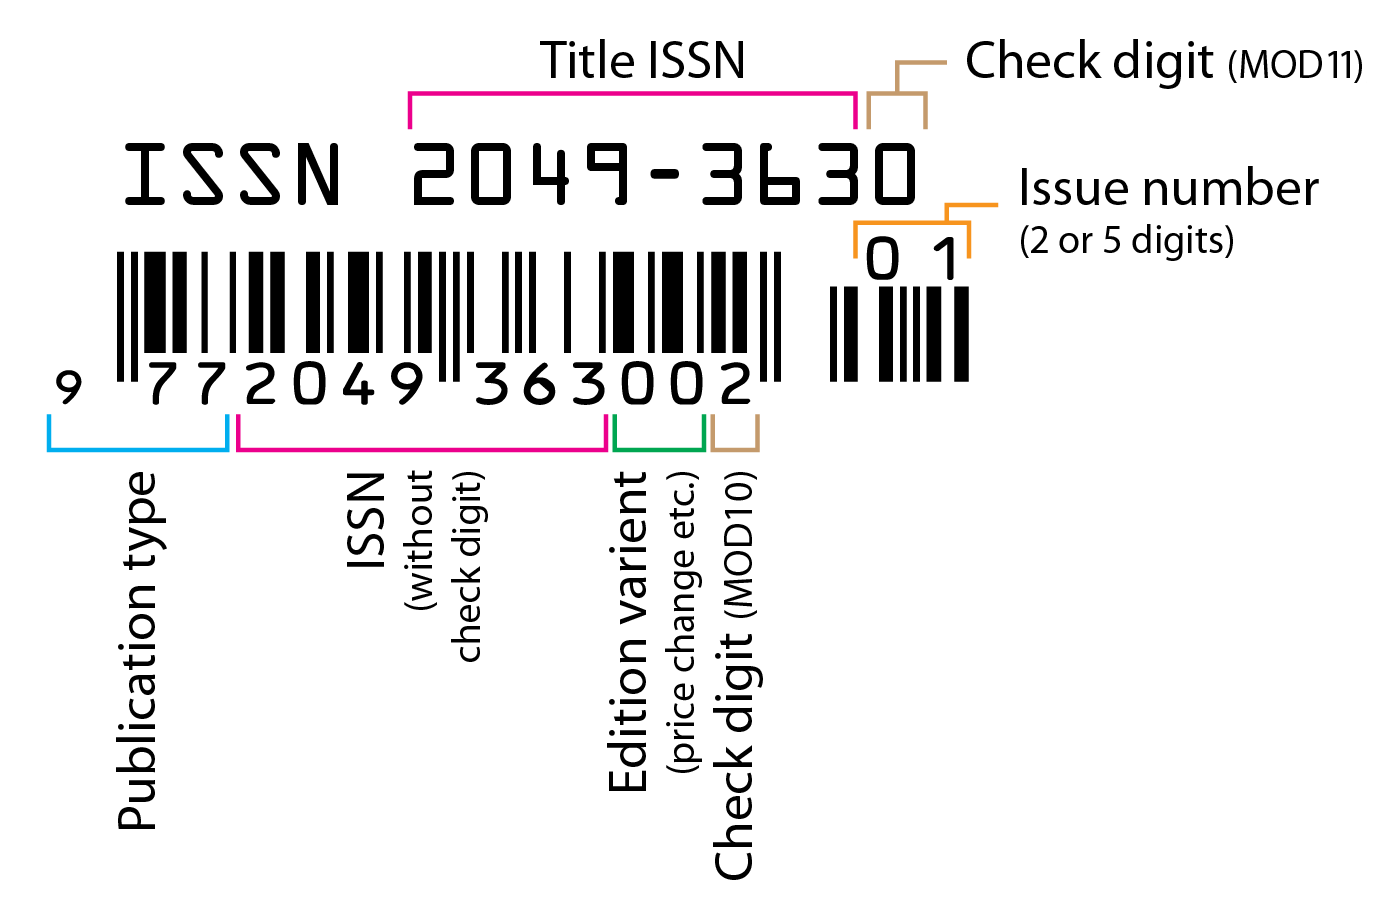 File Issn Barcode Explained